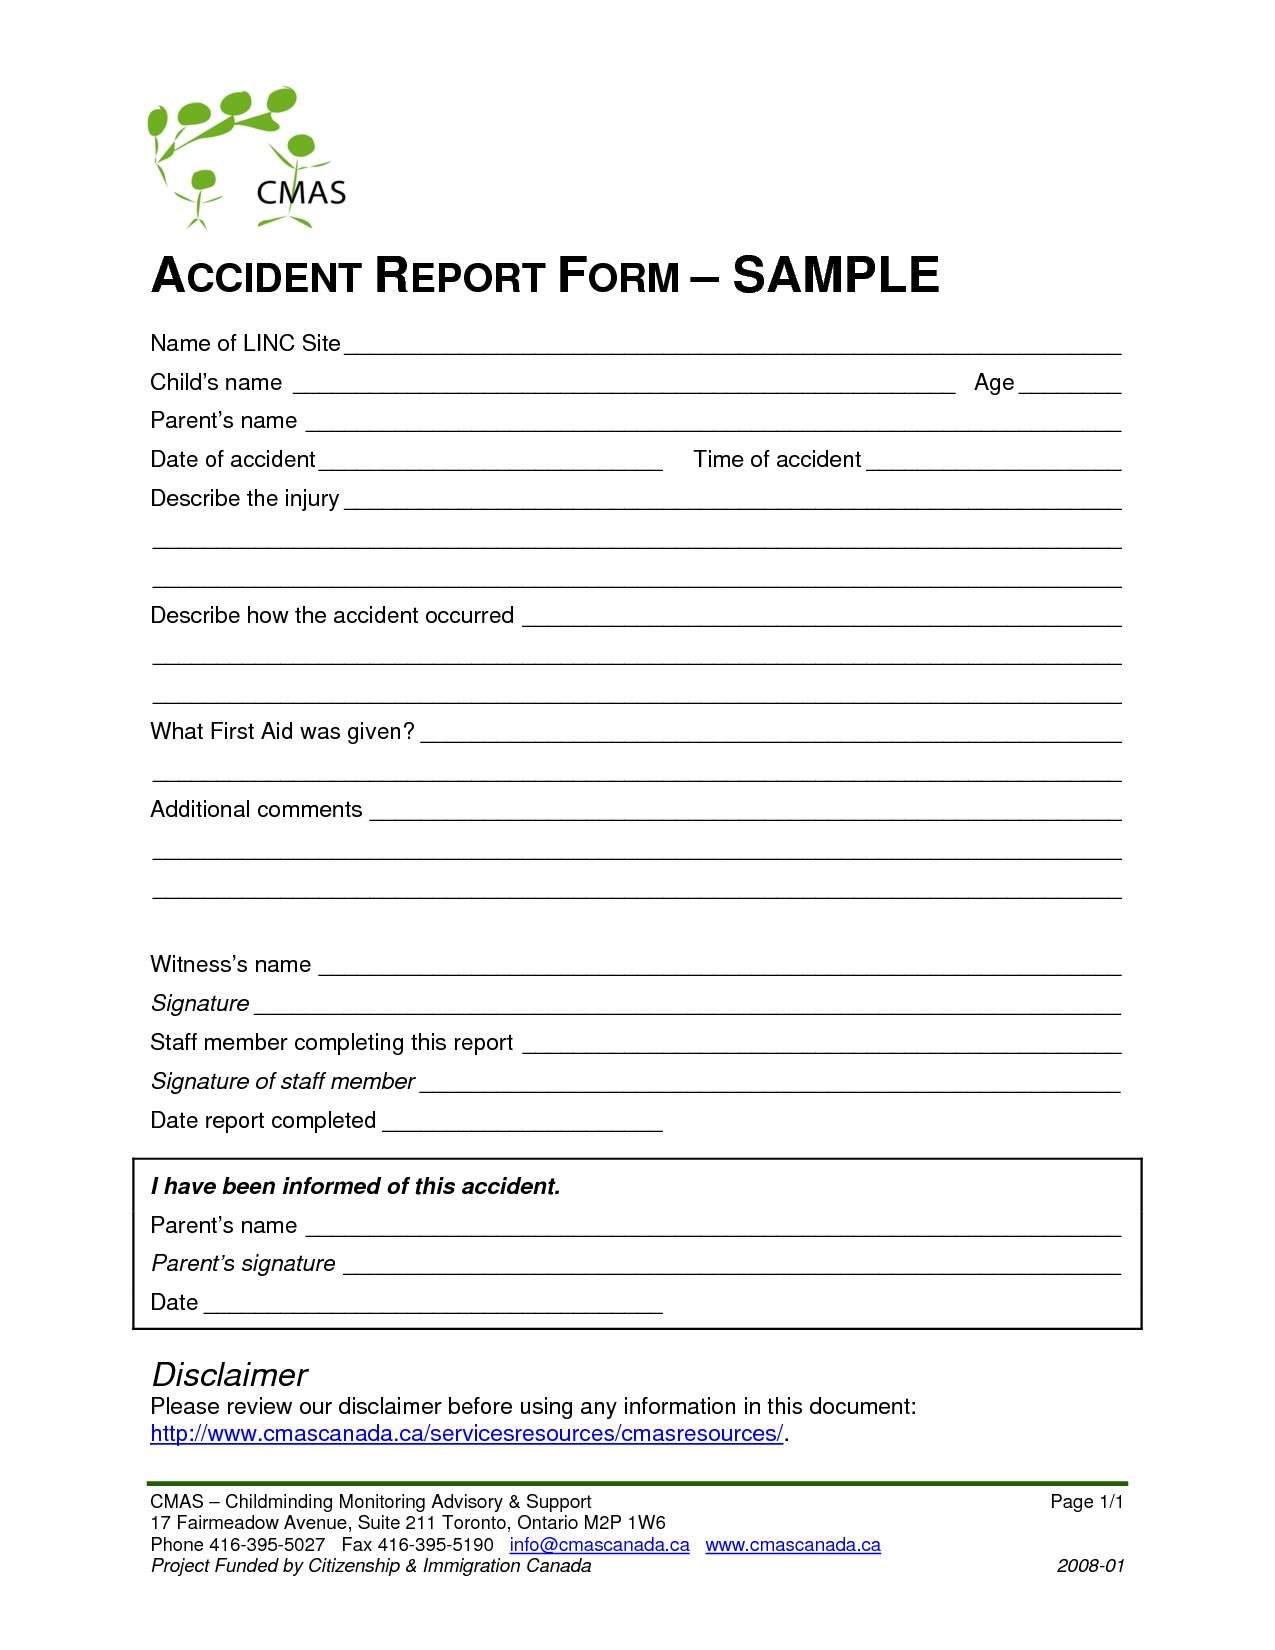 Insurance Incident Report Template - Atlantaauctionco Pertaining To Insurance Incident Report Template